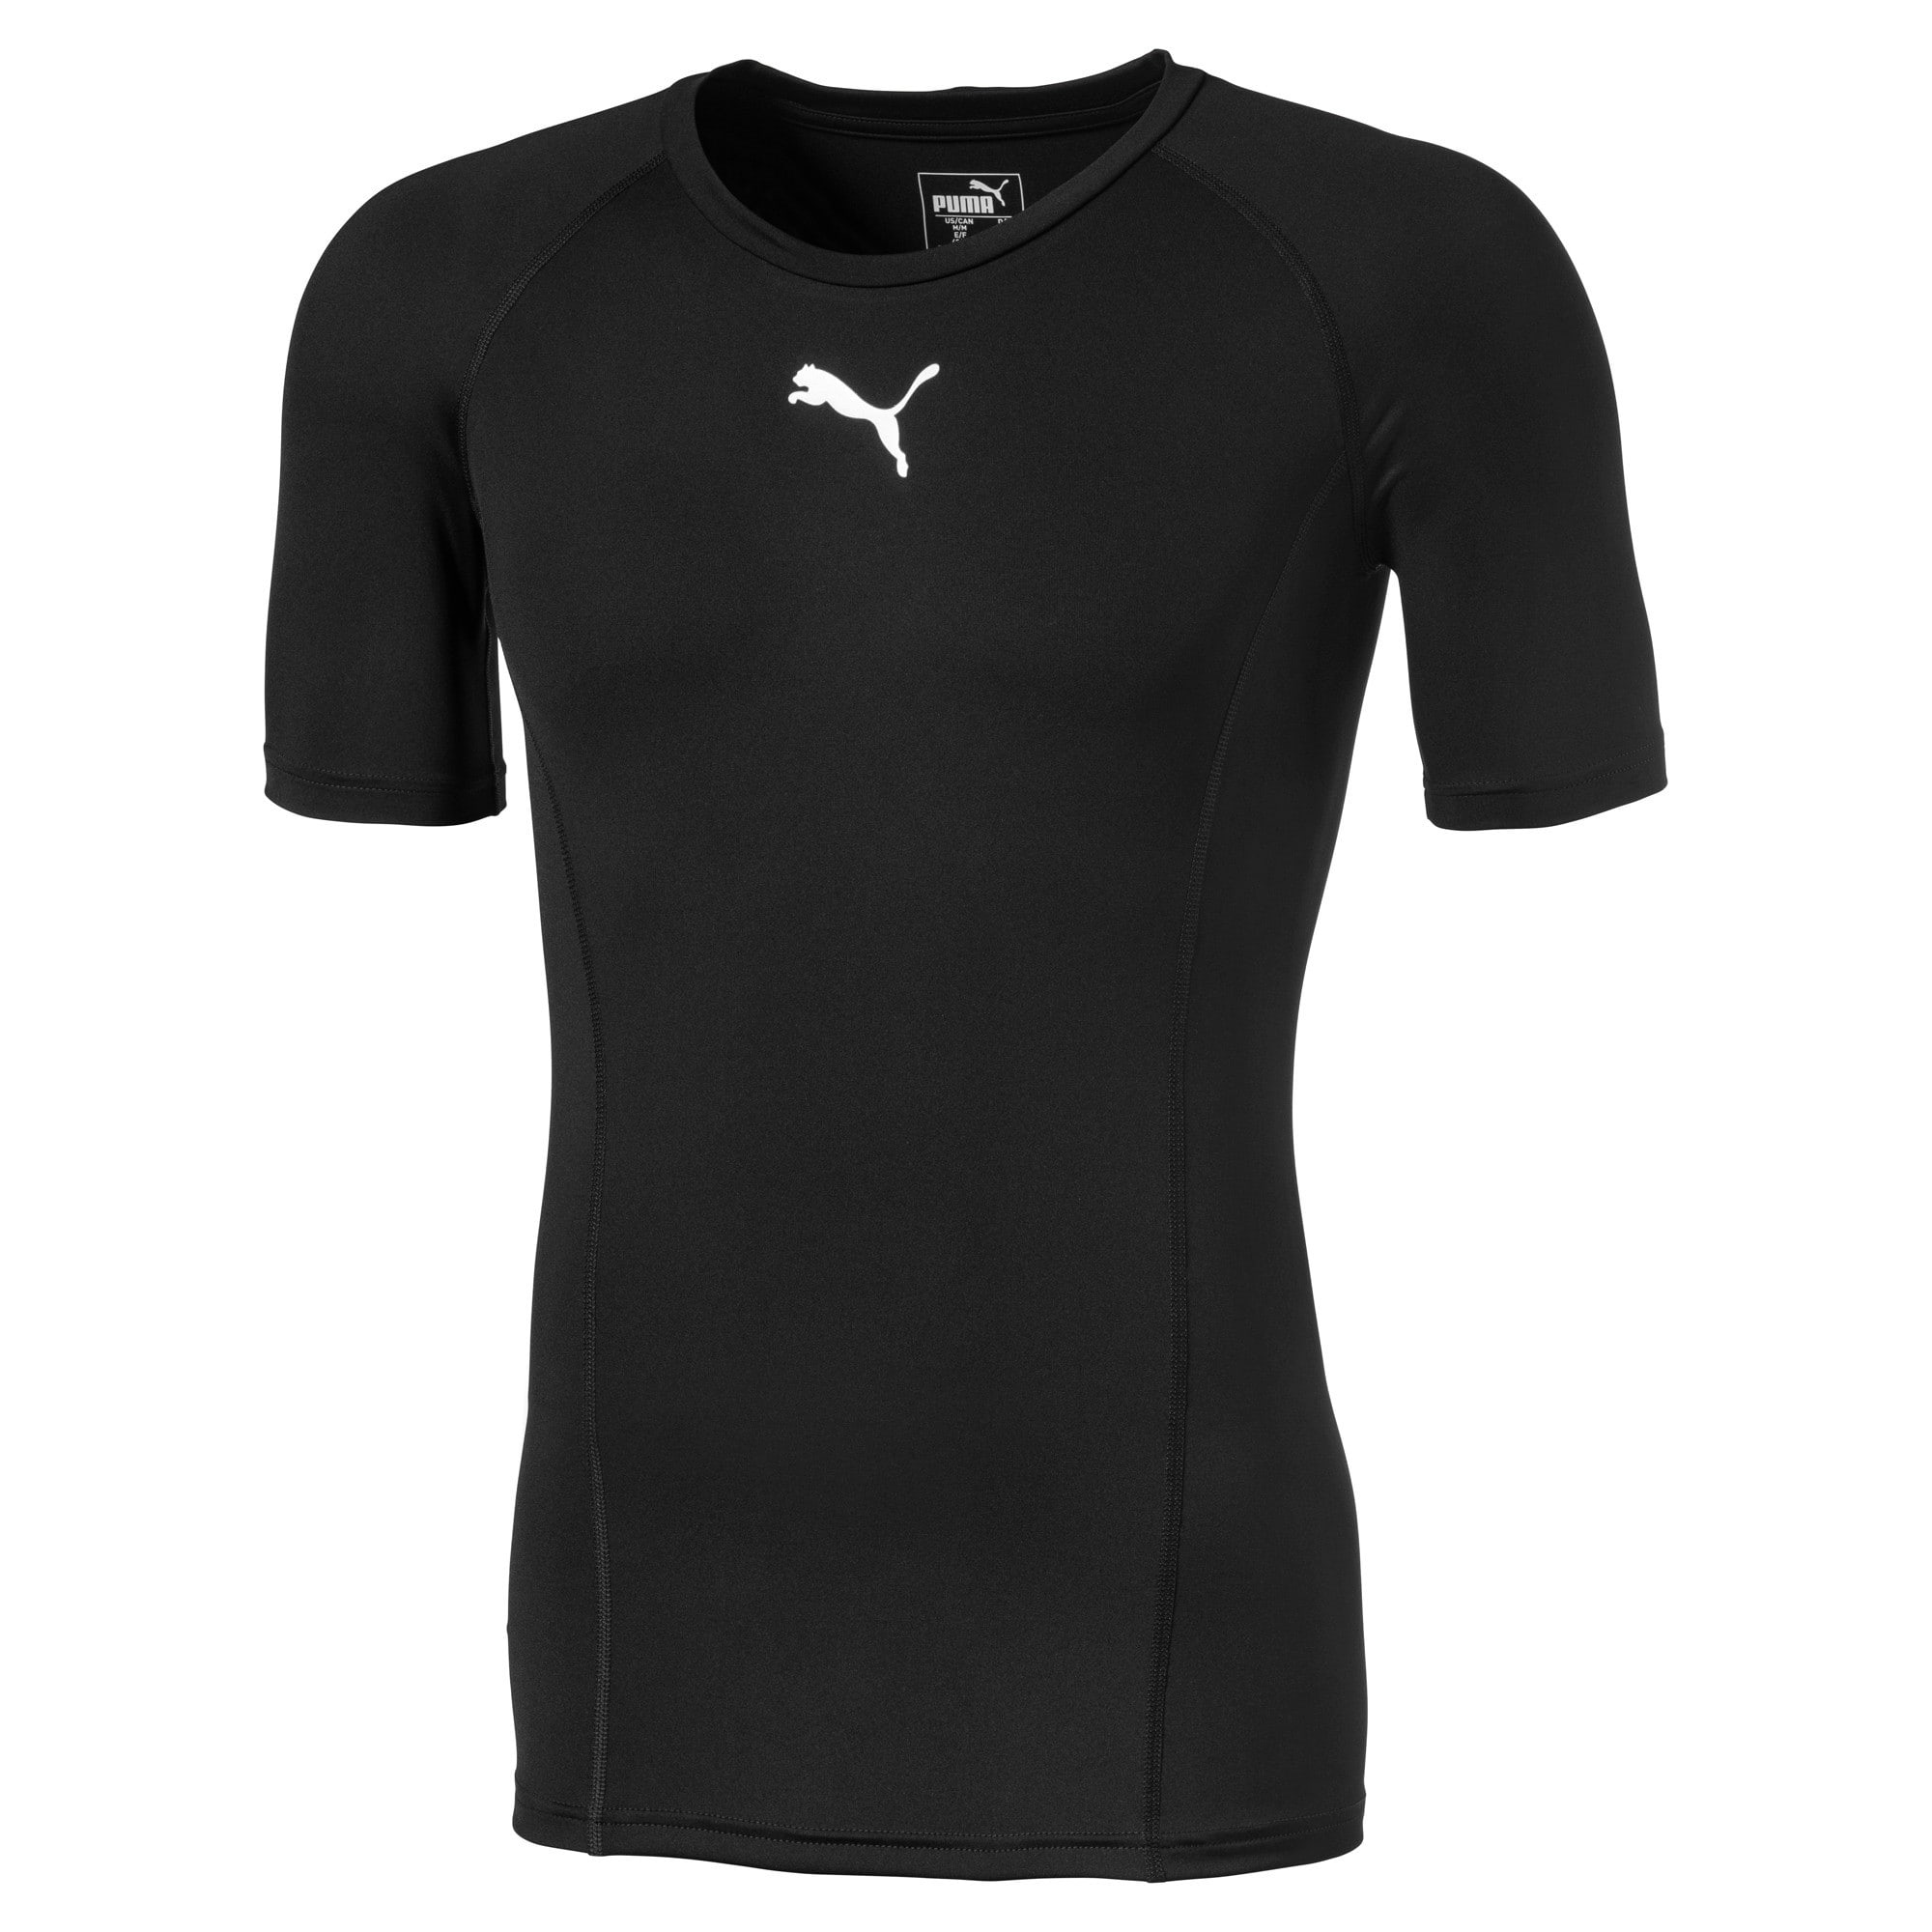 Thumbnail 1 of LIGA Baselayer T-shirt met korte mouwen voor heren, Puma Black, medium